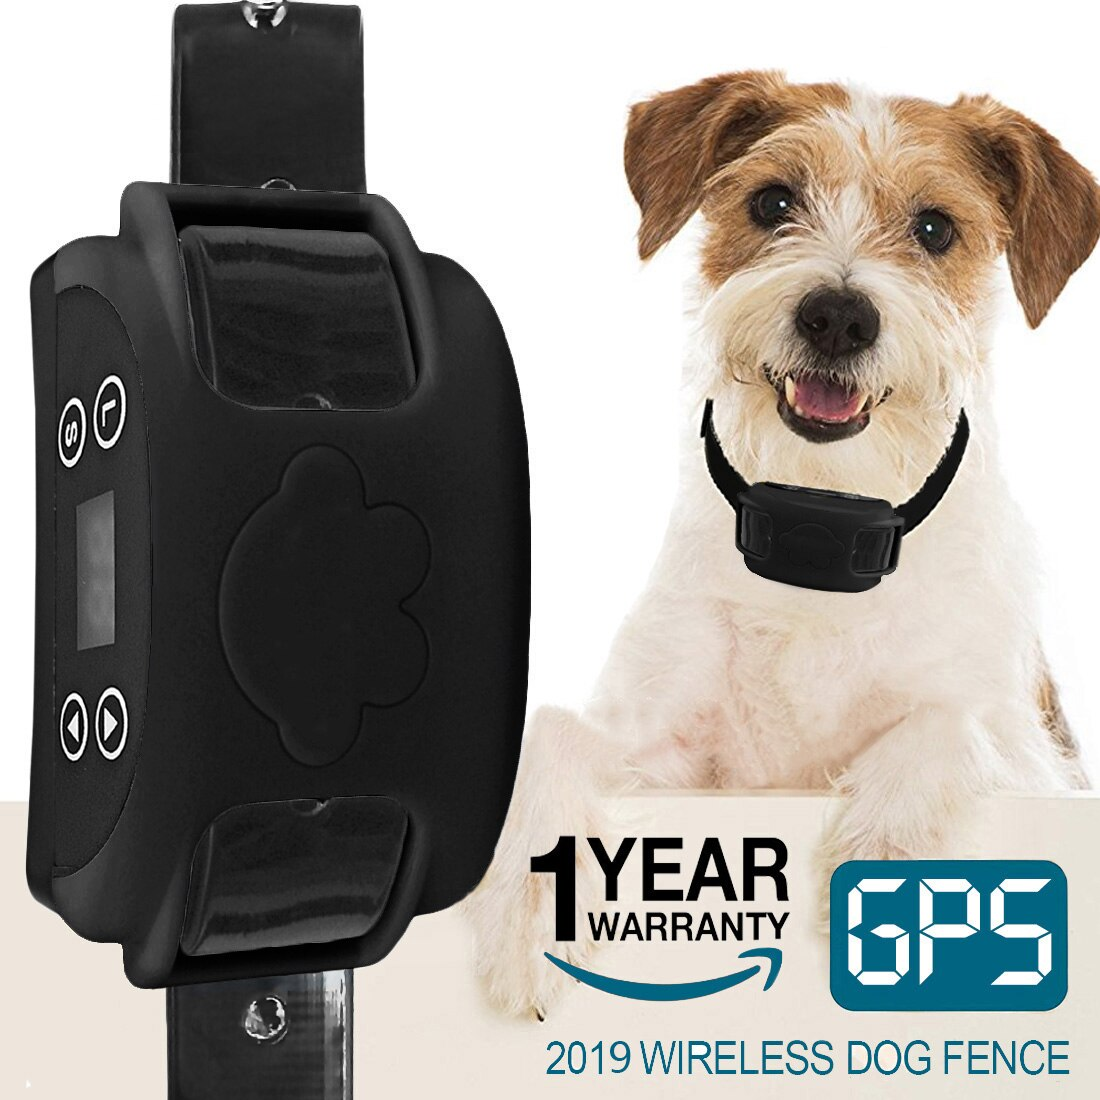 2020 All New Hot Wireless Electric Dog Fence GPS Outdoor Containment System Transmitter Collar Rechargeable Waterproof - Common Panda